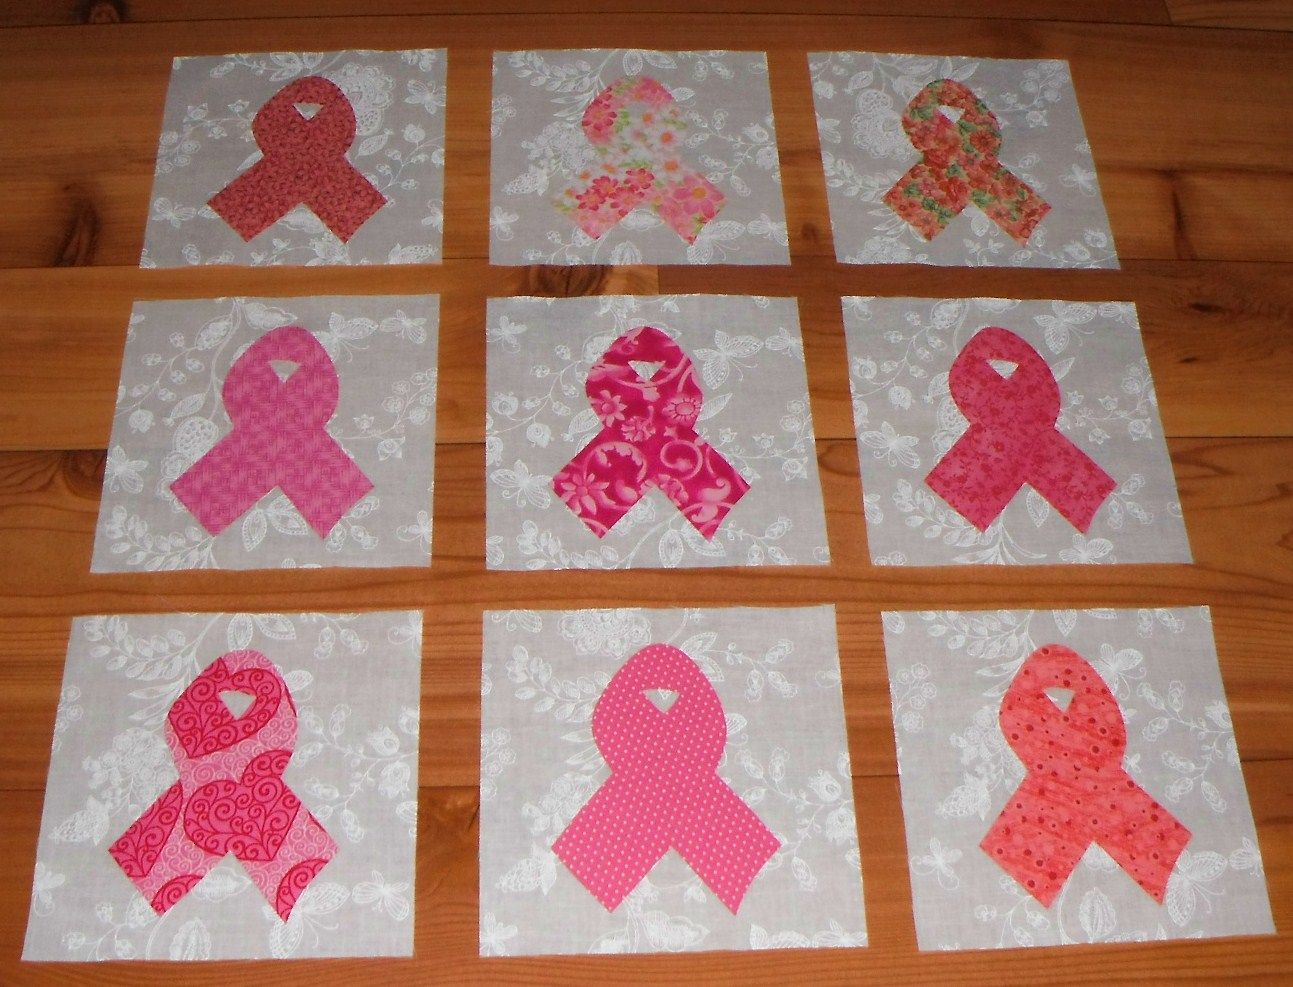 SUMMER TIME SALE!!!!! Now thru summer all of my applique quilt block sets and applique sets (free shipping on appliques) are only $10.00 per set!! You can buy directly from me or from Ebay. I have 100's to choose from. marsyemark@sbcglobal.net or PM me. http://search.ebay.com/_W0QQsassZmarsyemark24